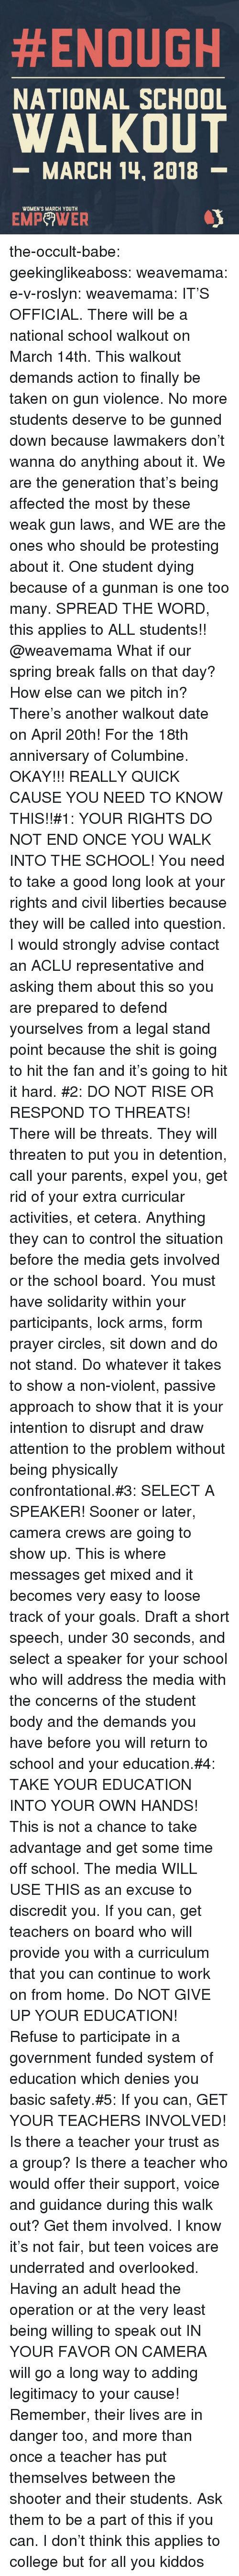 curriculum:  #ENOUGH  NATIONAL SCHOOL  WALKOUT  -MARCH 14, 2018  WOMEN'S MARCH YOUTH  EMPeWER the-occult-babe: geekinglikeaboss:  weavemama:  e-v-roslyn:   weavemama:  IT'S OFFICIAL. There will be a national school walkout on March 14th. This walkout demands action to finally be taken on gun violence. No more students deserve to be gunned down because lawmakers don't wanna do anything about it. We are the generation that's being affected the most by these weak gun laws, and WE are the ones who should be protesting about it. One student dying because of a gunman is one too many.SPREAD THE WORD, this applies to ALL students!!  @weavemama What if our spring break falls on that day? How else can we pitch in?   There's another walkout date on April 20th! For  the 18th anniversary of Columbine.   OKAY!!! REALLY QUICK CAUSE YOU NEED TO KNOW THIS!!#1: YOUR RIGHTS DO NOT END ONCE YOU WALK INTO THE SCHOOL! You need to take a good long look at your rights and civil liberties because they will be called into question. I would strongly advise contact an ACLU representative and asking them about this so you are prepared to defend yourselves from a legal stand point because the shit is going to hit the fan and it's going to hit it hard. #2: DO NOT RISE OR RESPOND TO THREATS! There will be threats. They will threaten to put you in detention, call your parents, expel you, get rid of your extra curricular activities, et cetera. Anything they can to control the situation before the media gets involved or the school board. You must have solidarity within your participants, lock arms, form prayer circles, sit down and do not stand. Do whatever it takes to show a non-violent, passive approach to show that it is your intention to disrupt and draw attention to the problem without being physically confrontational.#3: SELECT A SPEAKER! Sooner or later, camera crews are going to show up. This is where messages get mixed and it becomes very easy to loose track of your goals. Draft a short spee